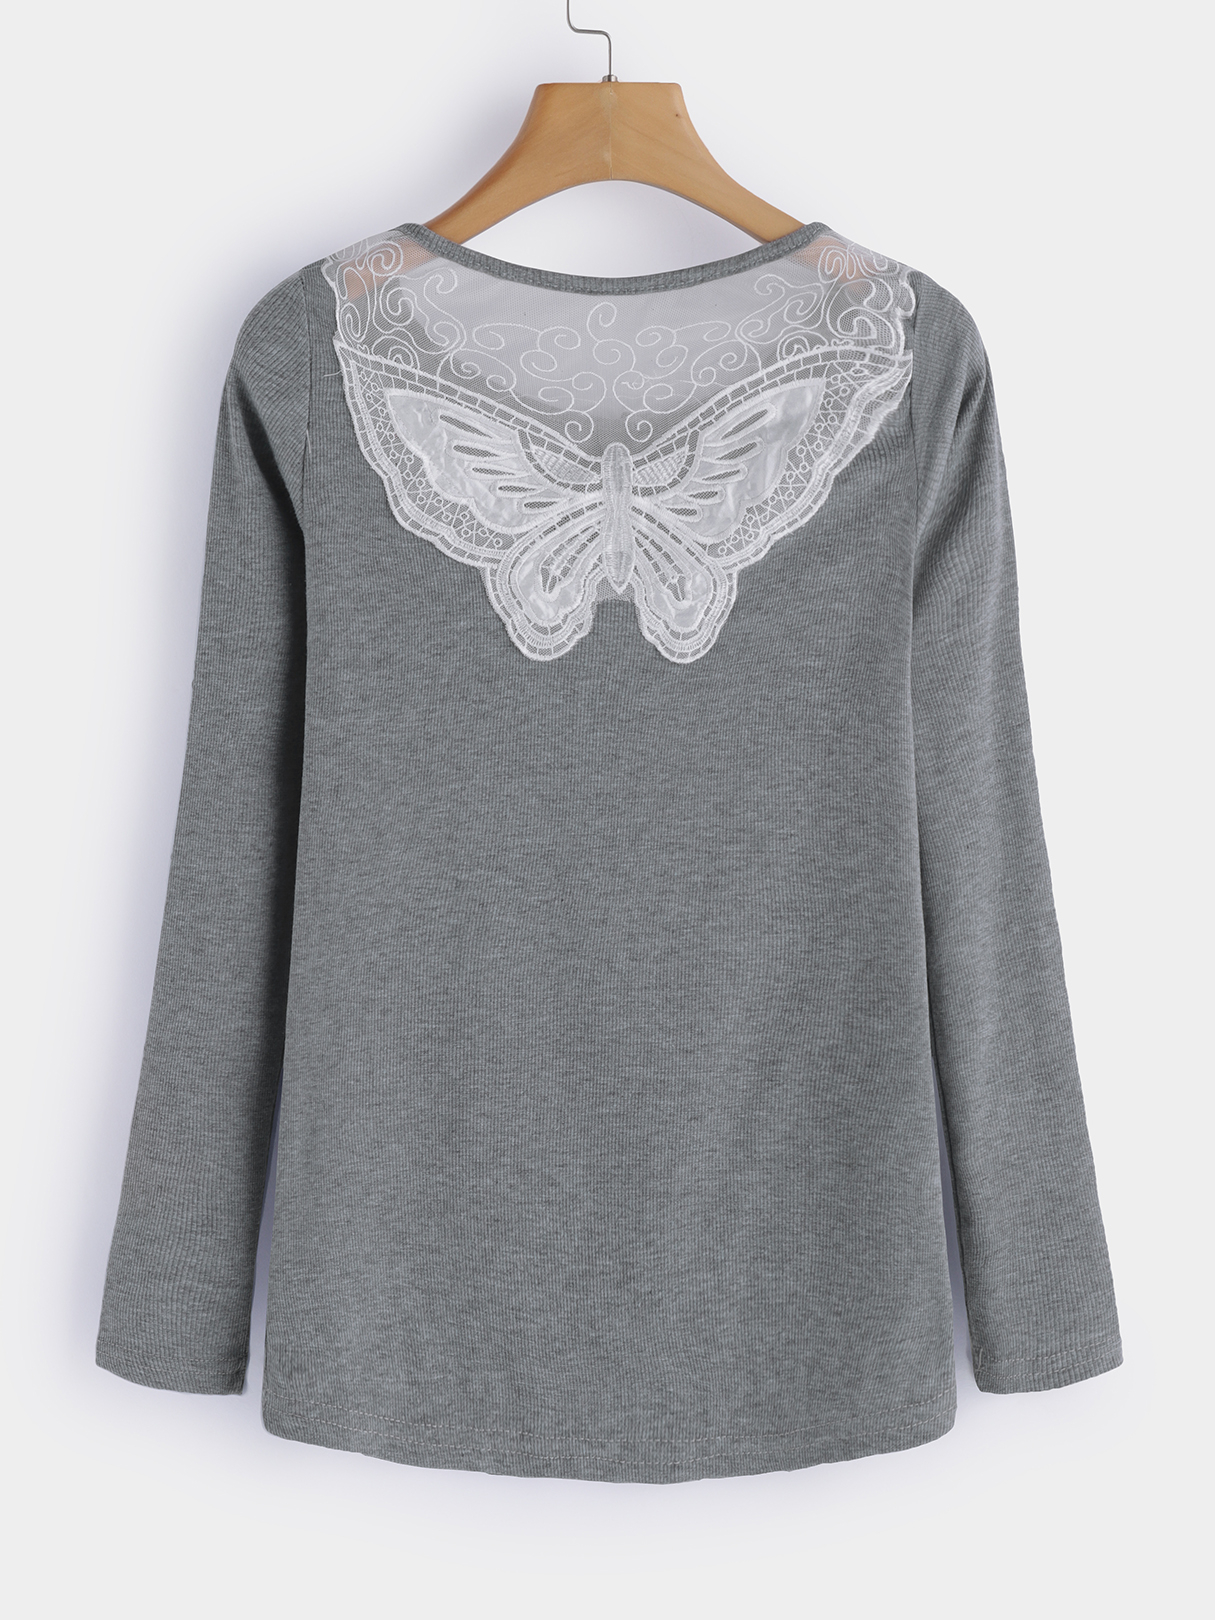 Grey Lace Details Round Neck Long Sleeves T-shirts beige see through lace details star round neck t shirt